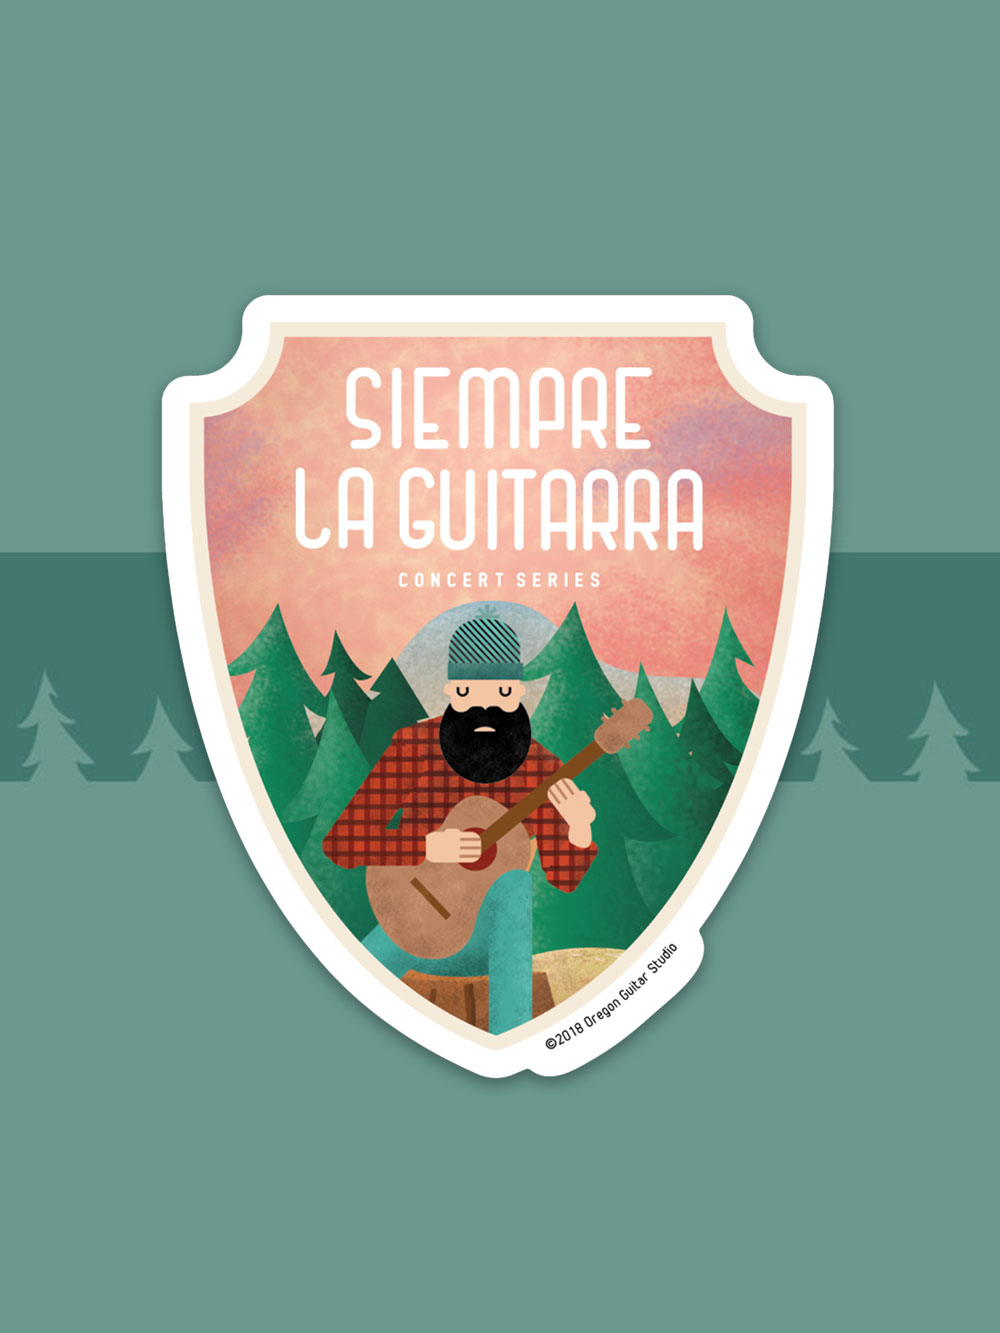 Siempre La Guitarra Event Sticker by Graphicsbyte